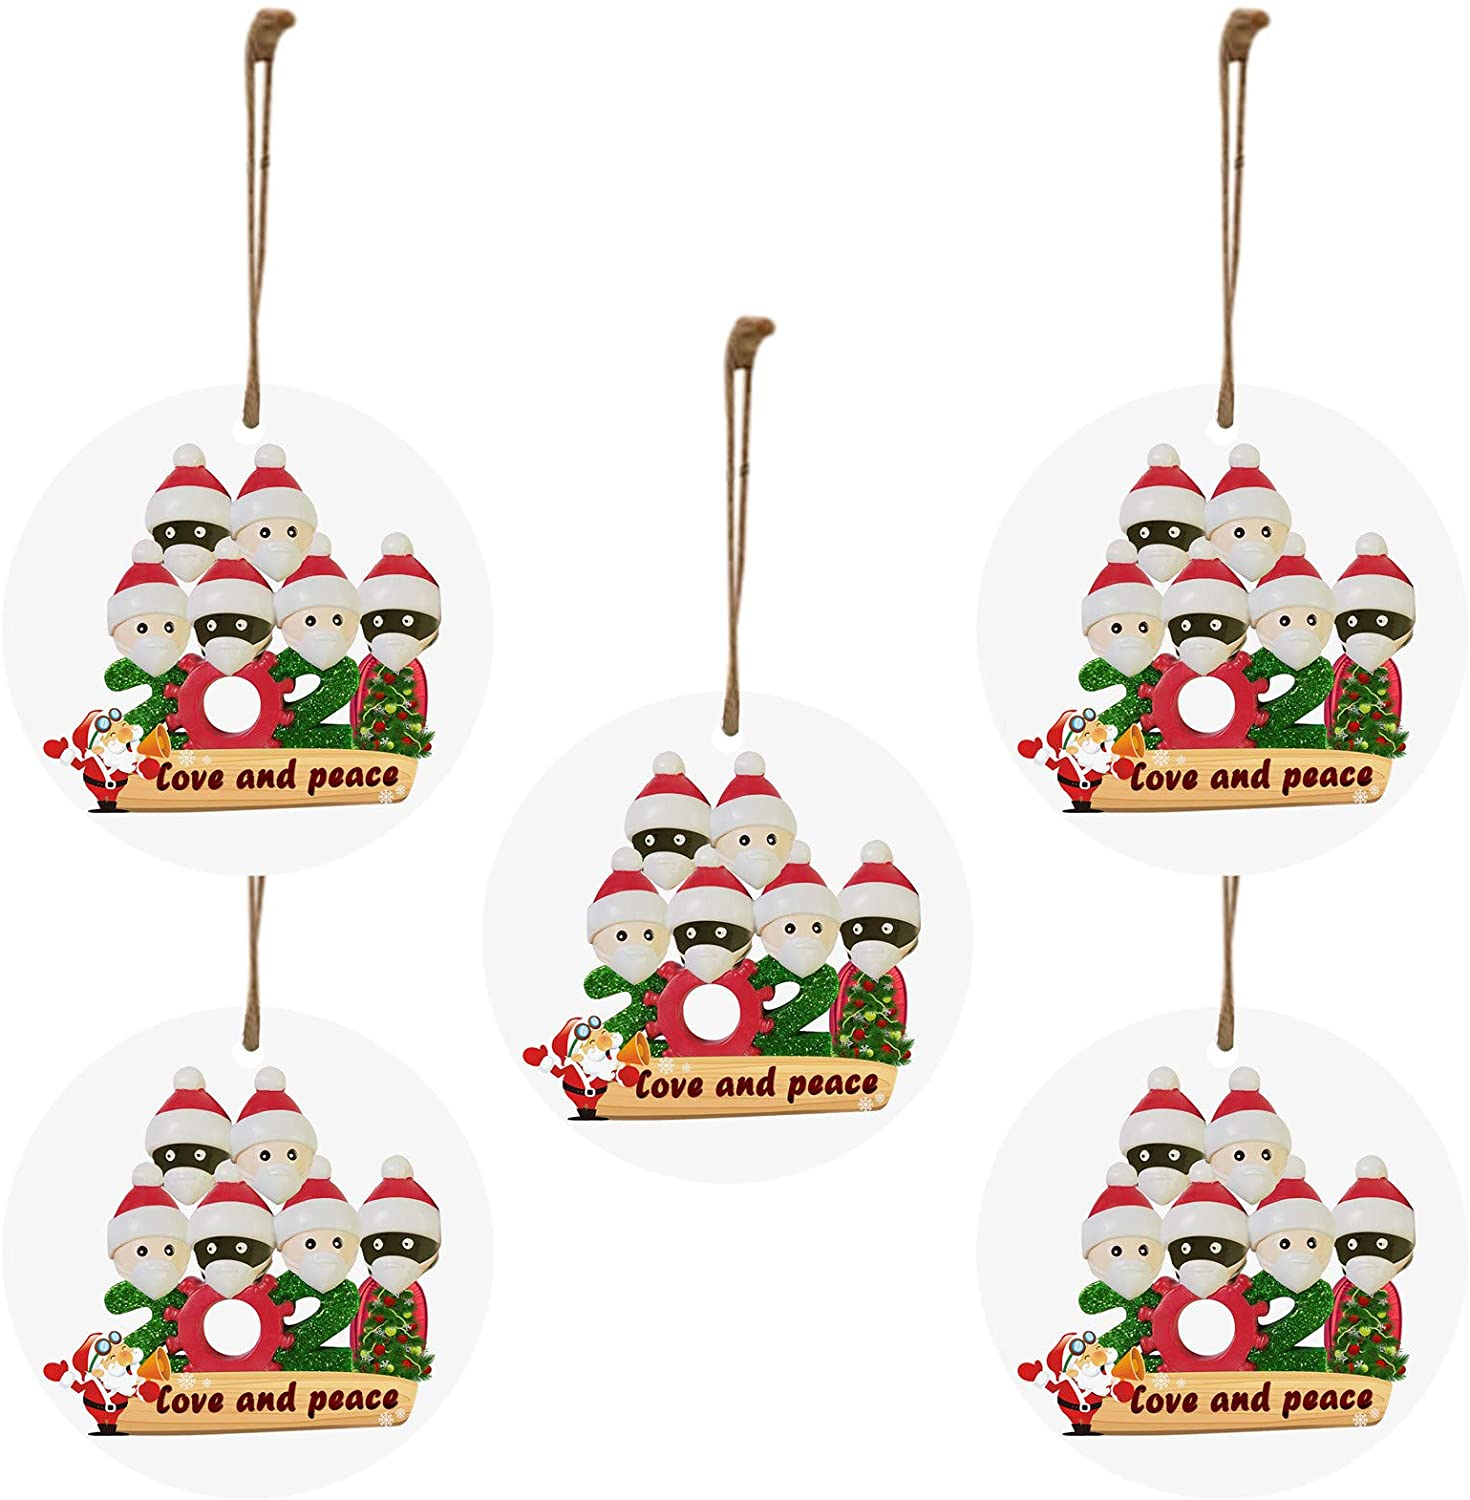 BATKKM Love and Peace Christmas Ornaments 2020 Quarantine Survivor Family Customized Christmas Decorating Kits Creative Gift for Family, Christmas Party Decoration(# Family of 6,5PC)